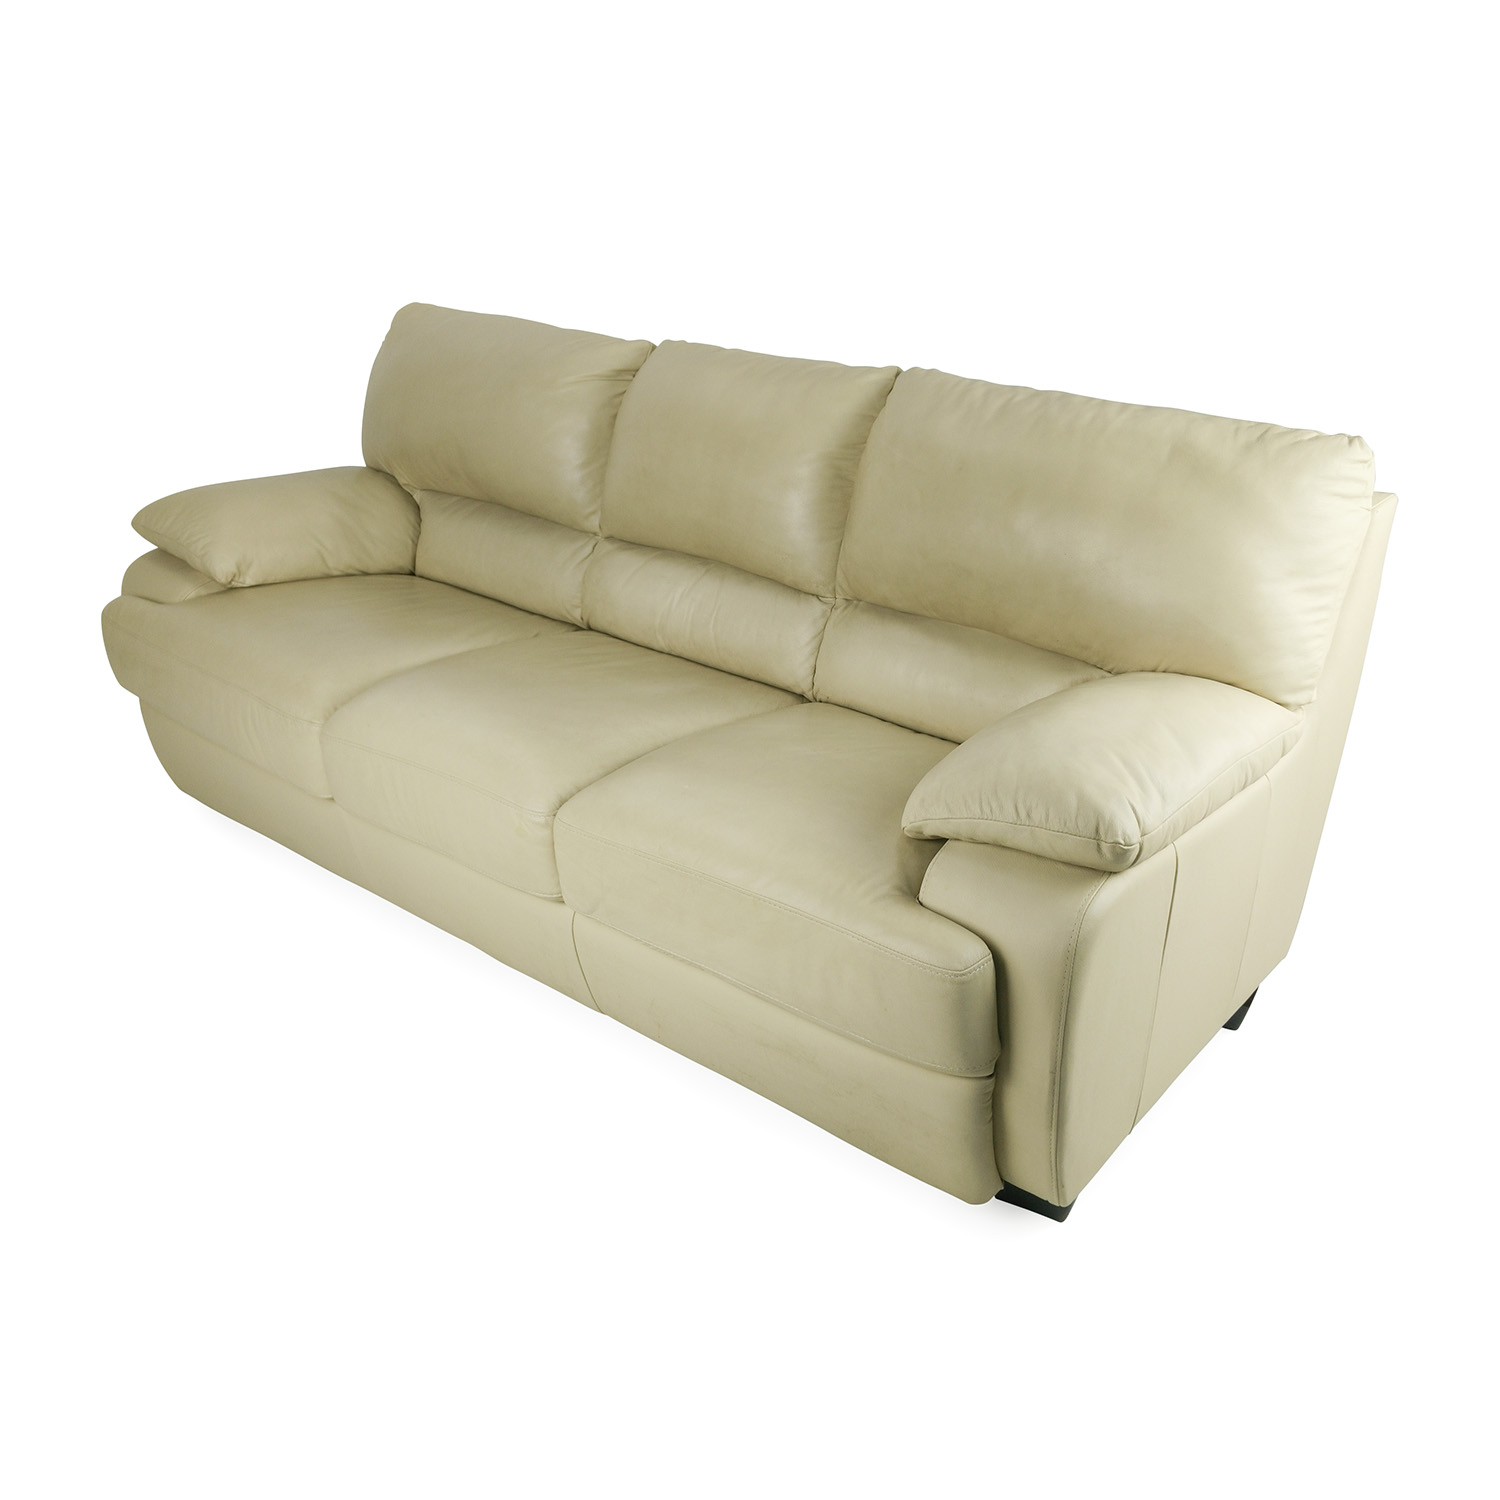 Leather Sofas Second Hand Sale